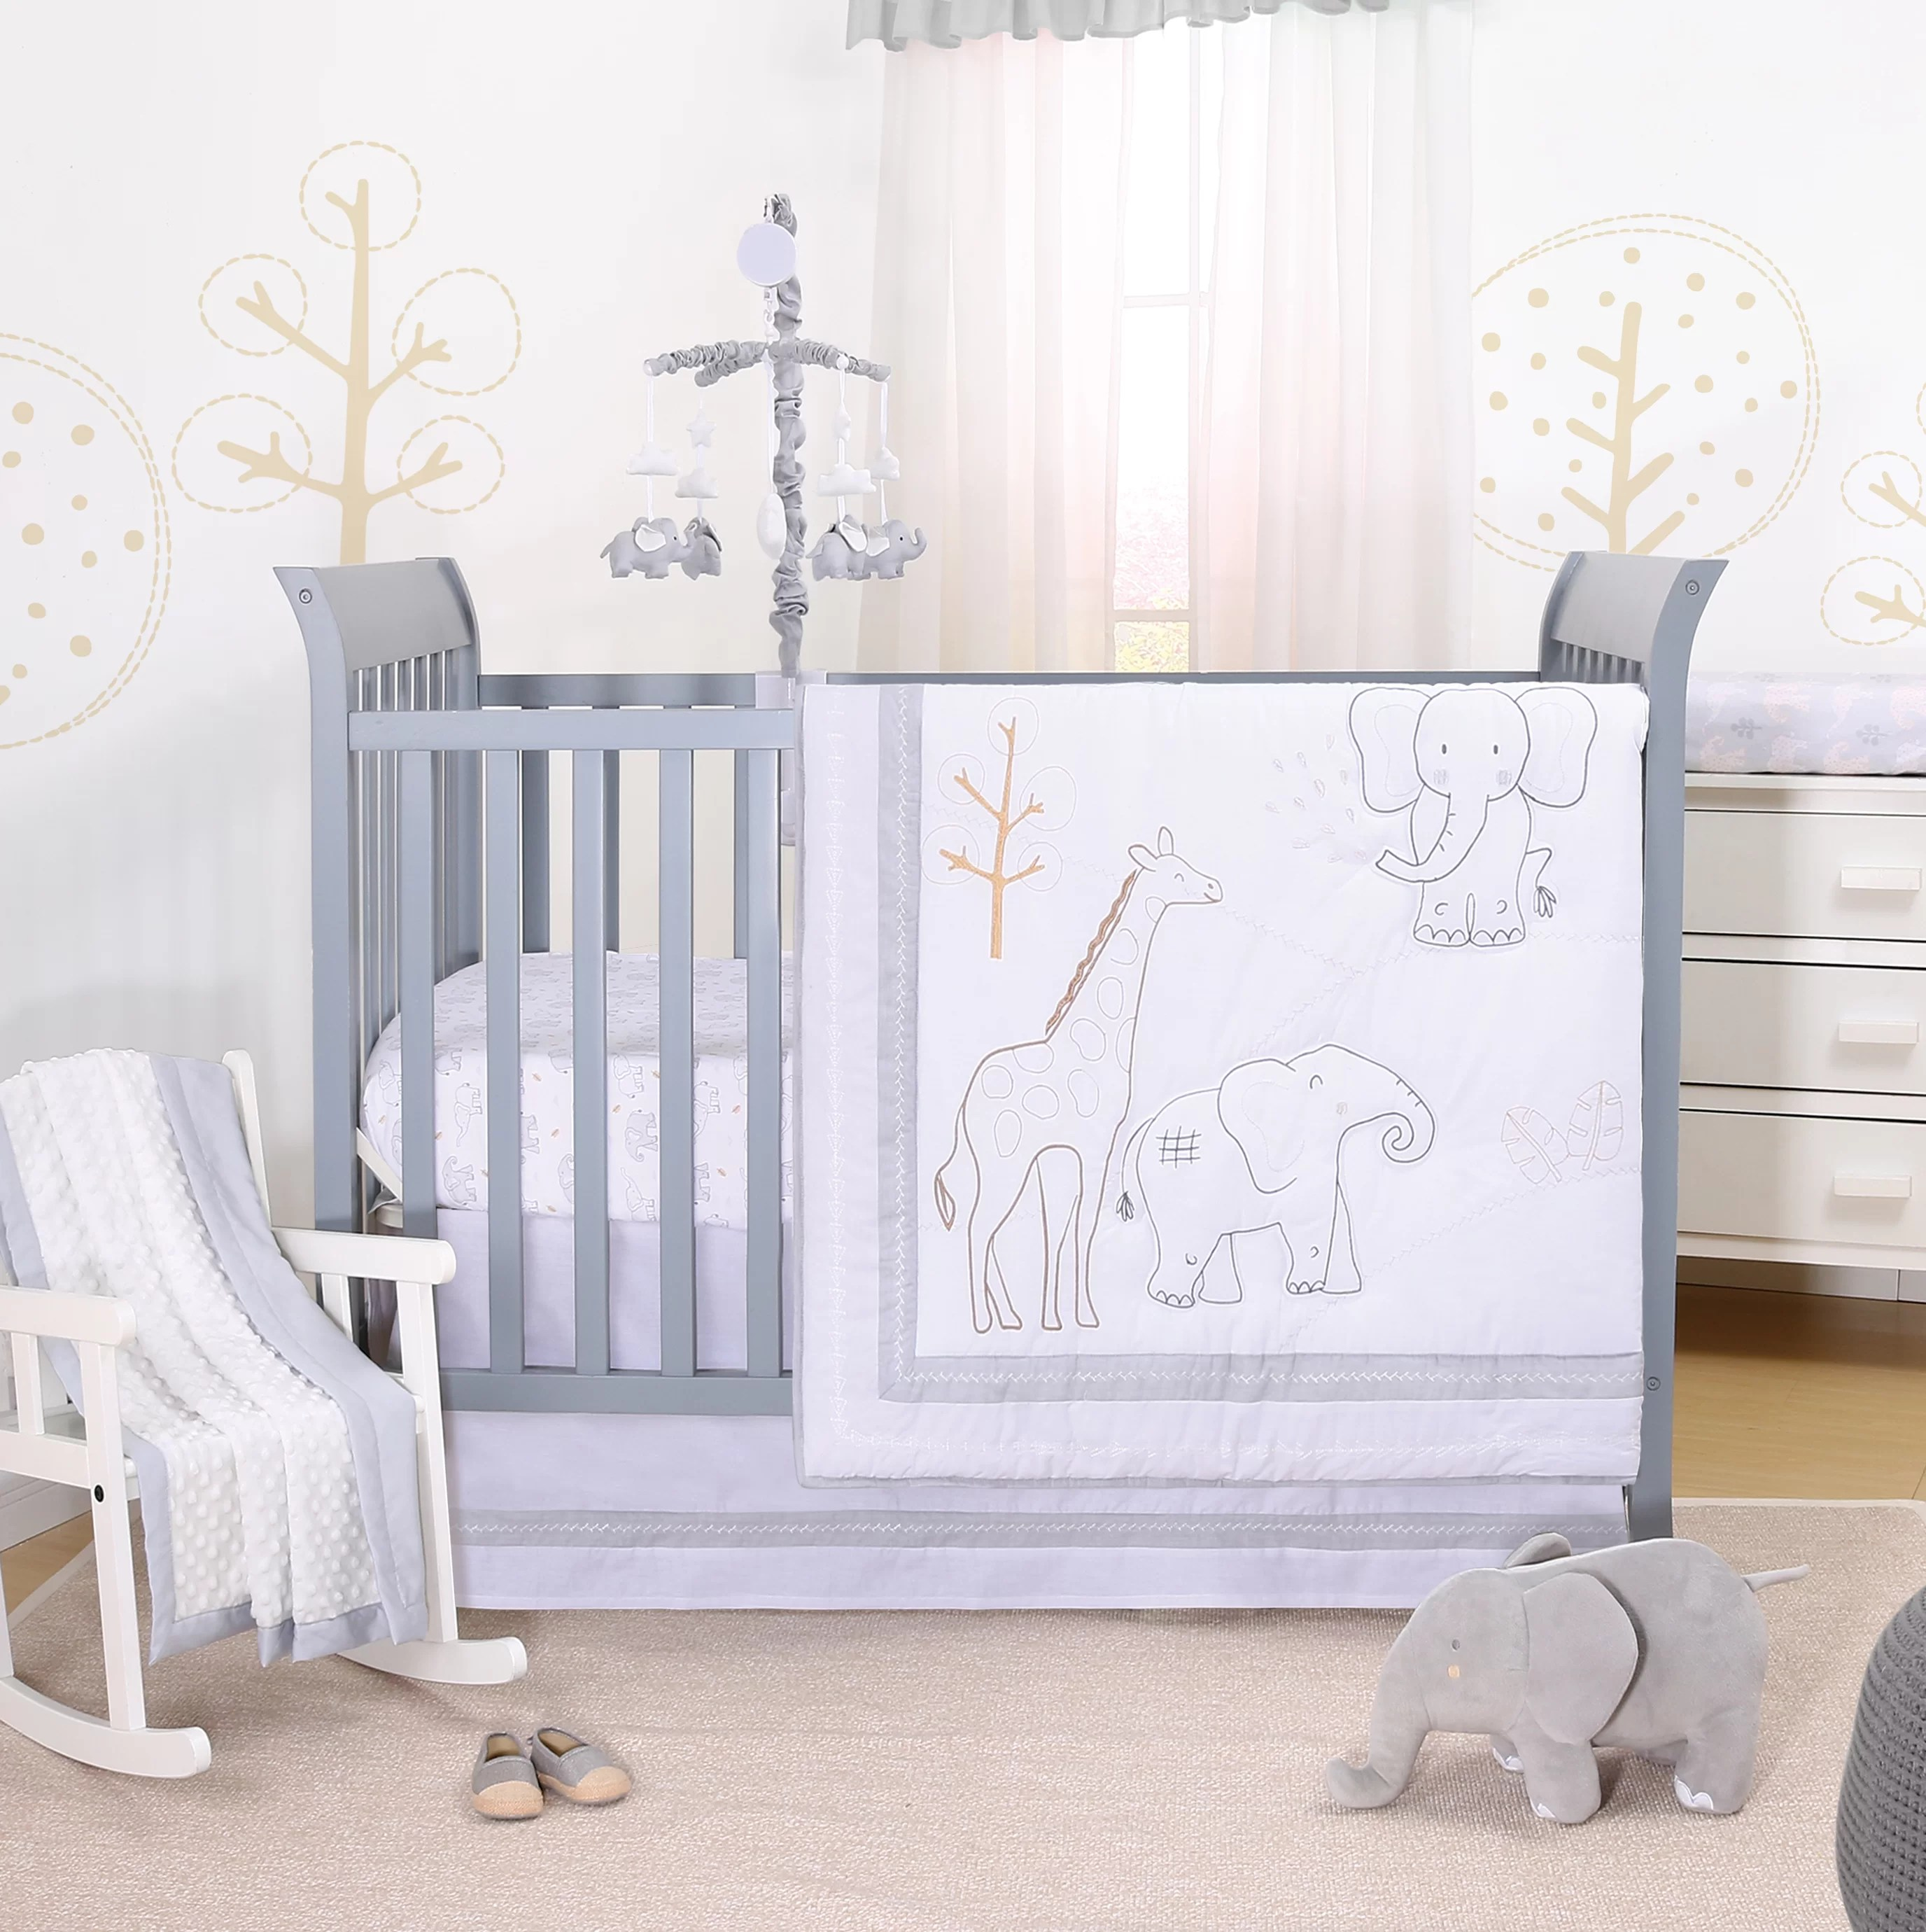 Full Crib Bedding Sets Tons Of Love 3 Piece Crib Bedding Set